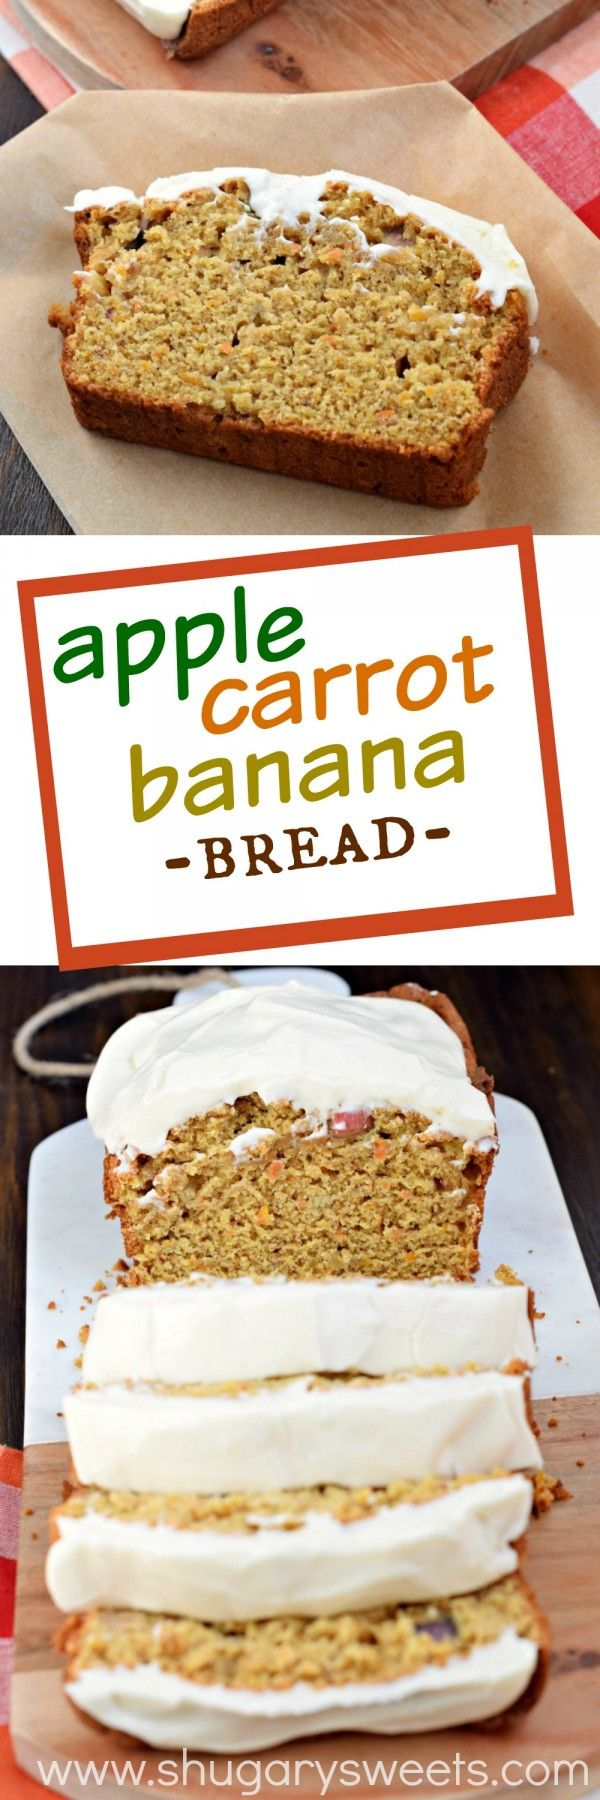 As if this Apple Banana Carrot Bread wasn't sweet enough, adding the cream cheese frosting takes this bread recipe to a whole new delicious level!